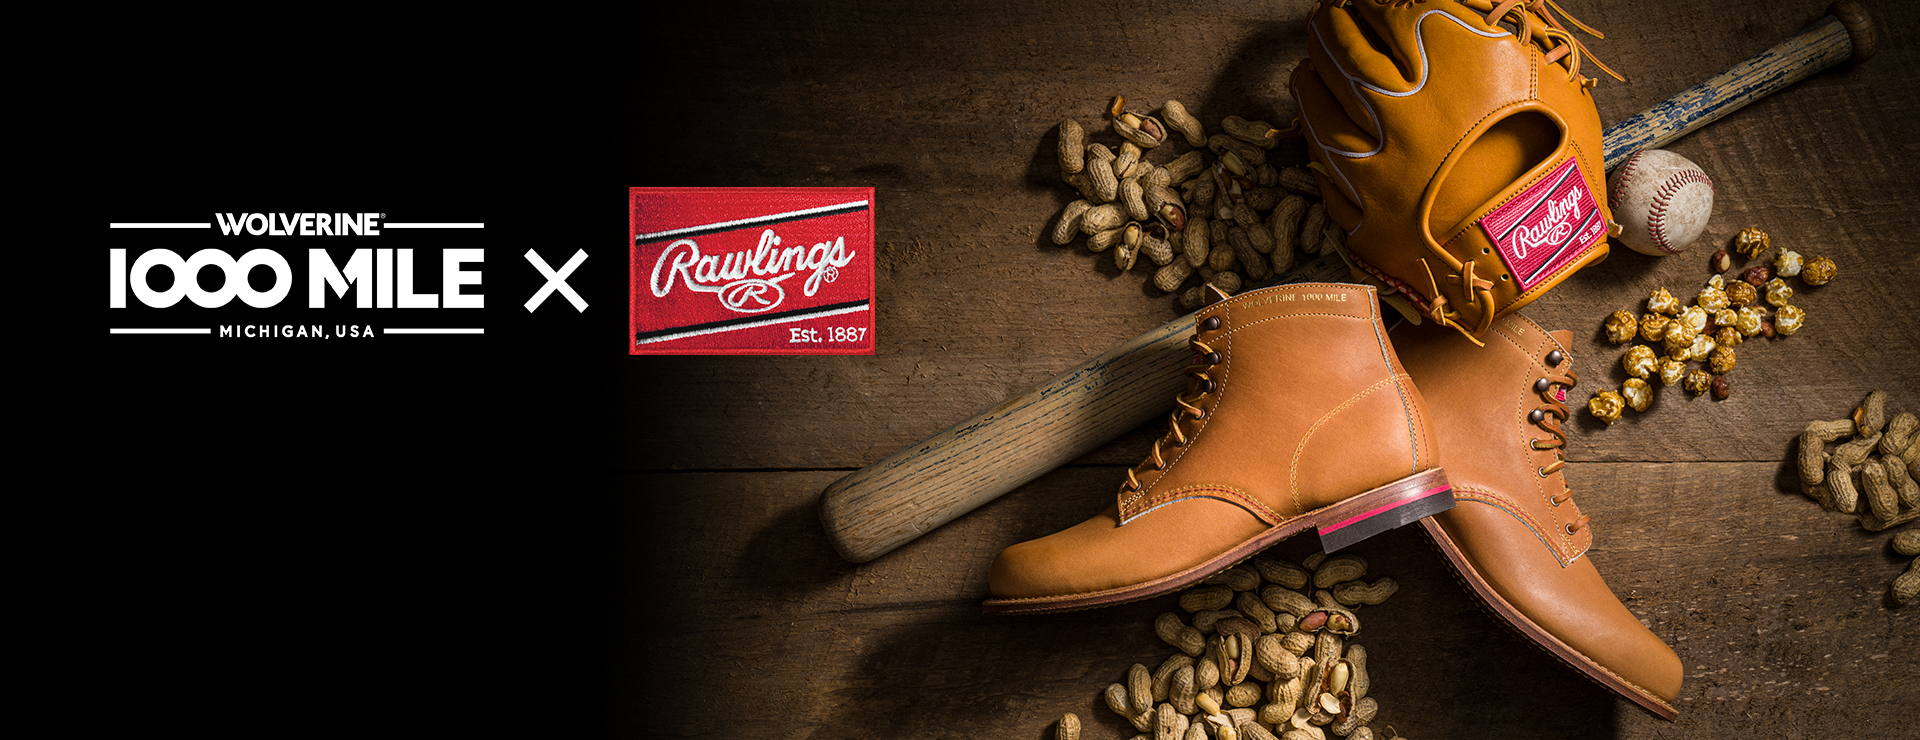 The new 1000 mile X Rawlings work boots laying on a pile of peanutes next to a baseball mitt.